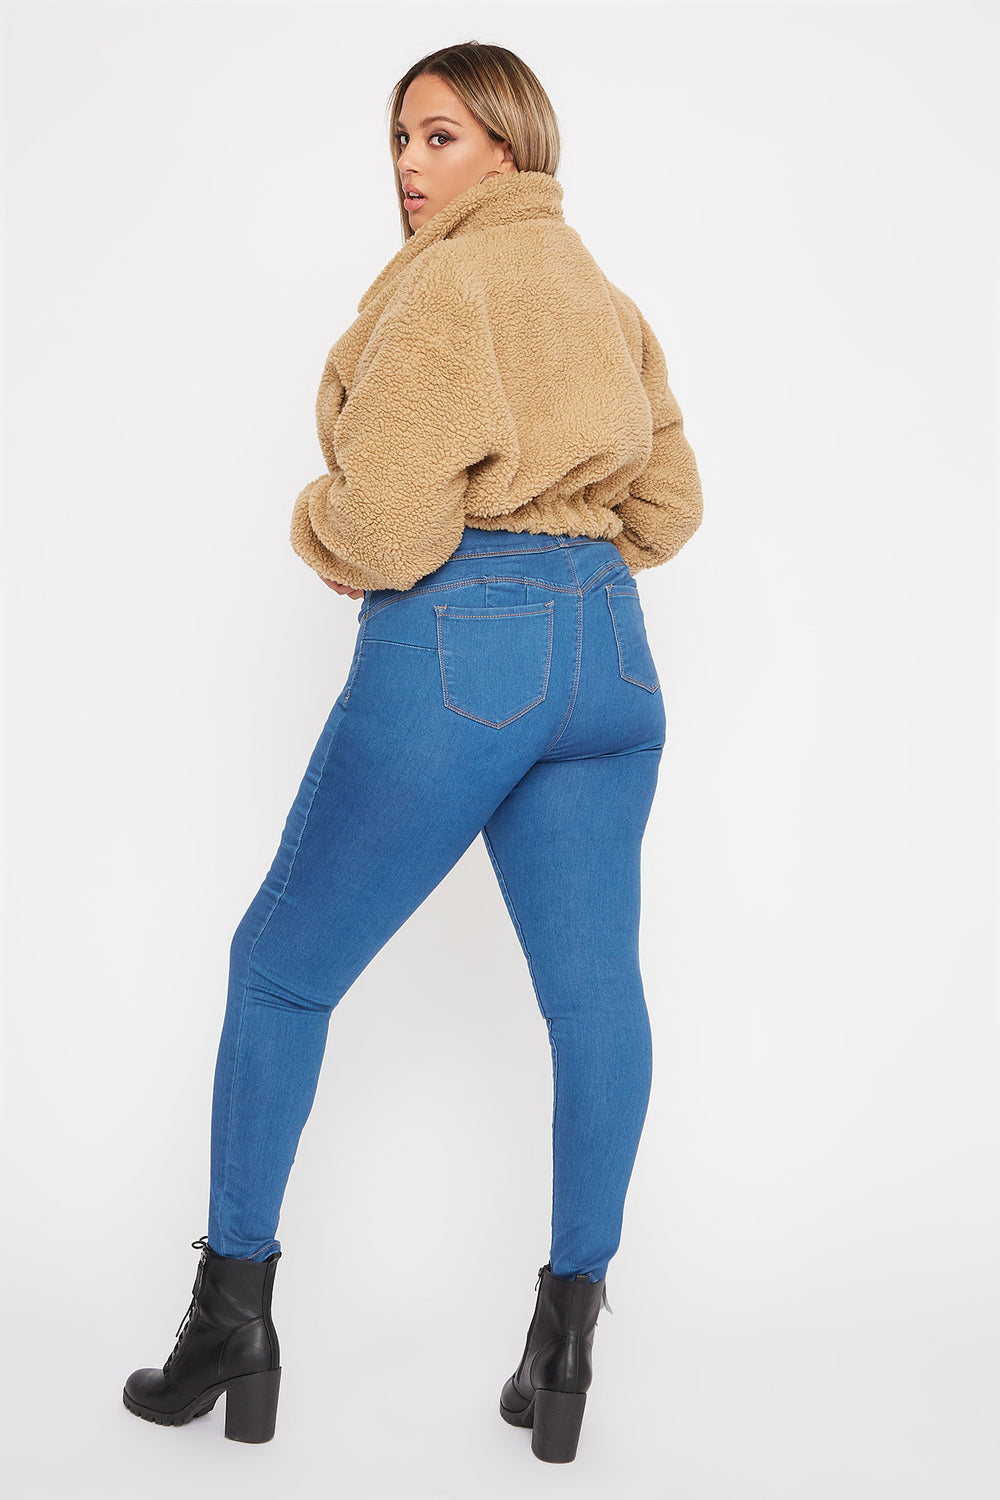 Plus Size Butt, I Love You 3-Tier High-Rise Push-Up Skinny Jean Denim Blue